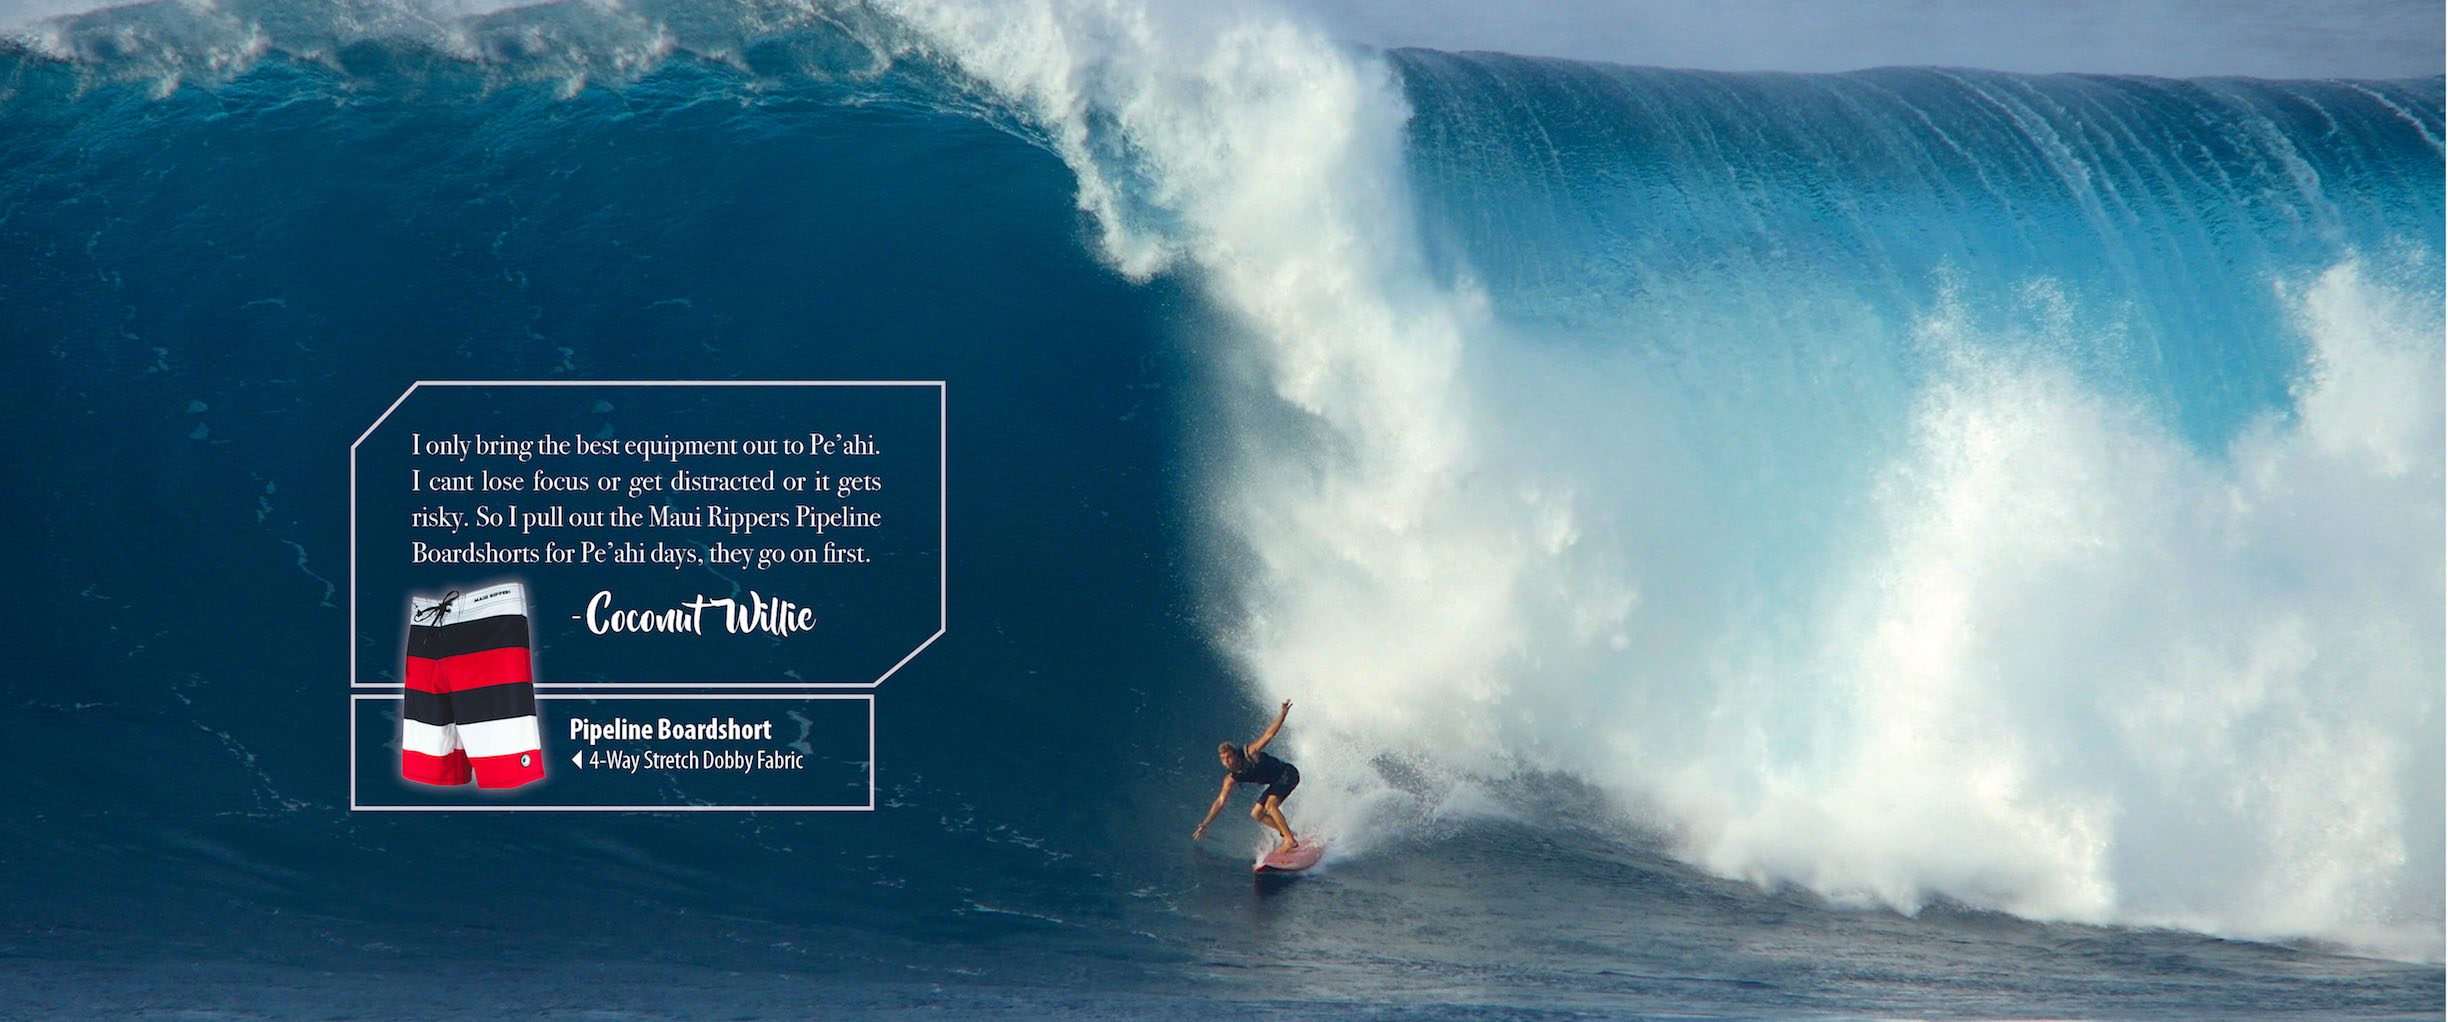 Maui Board Shorts Pipeline Coconut Willie Peahi Maui Rippers